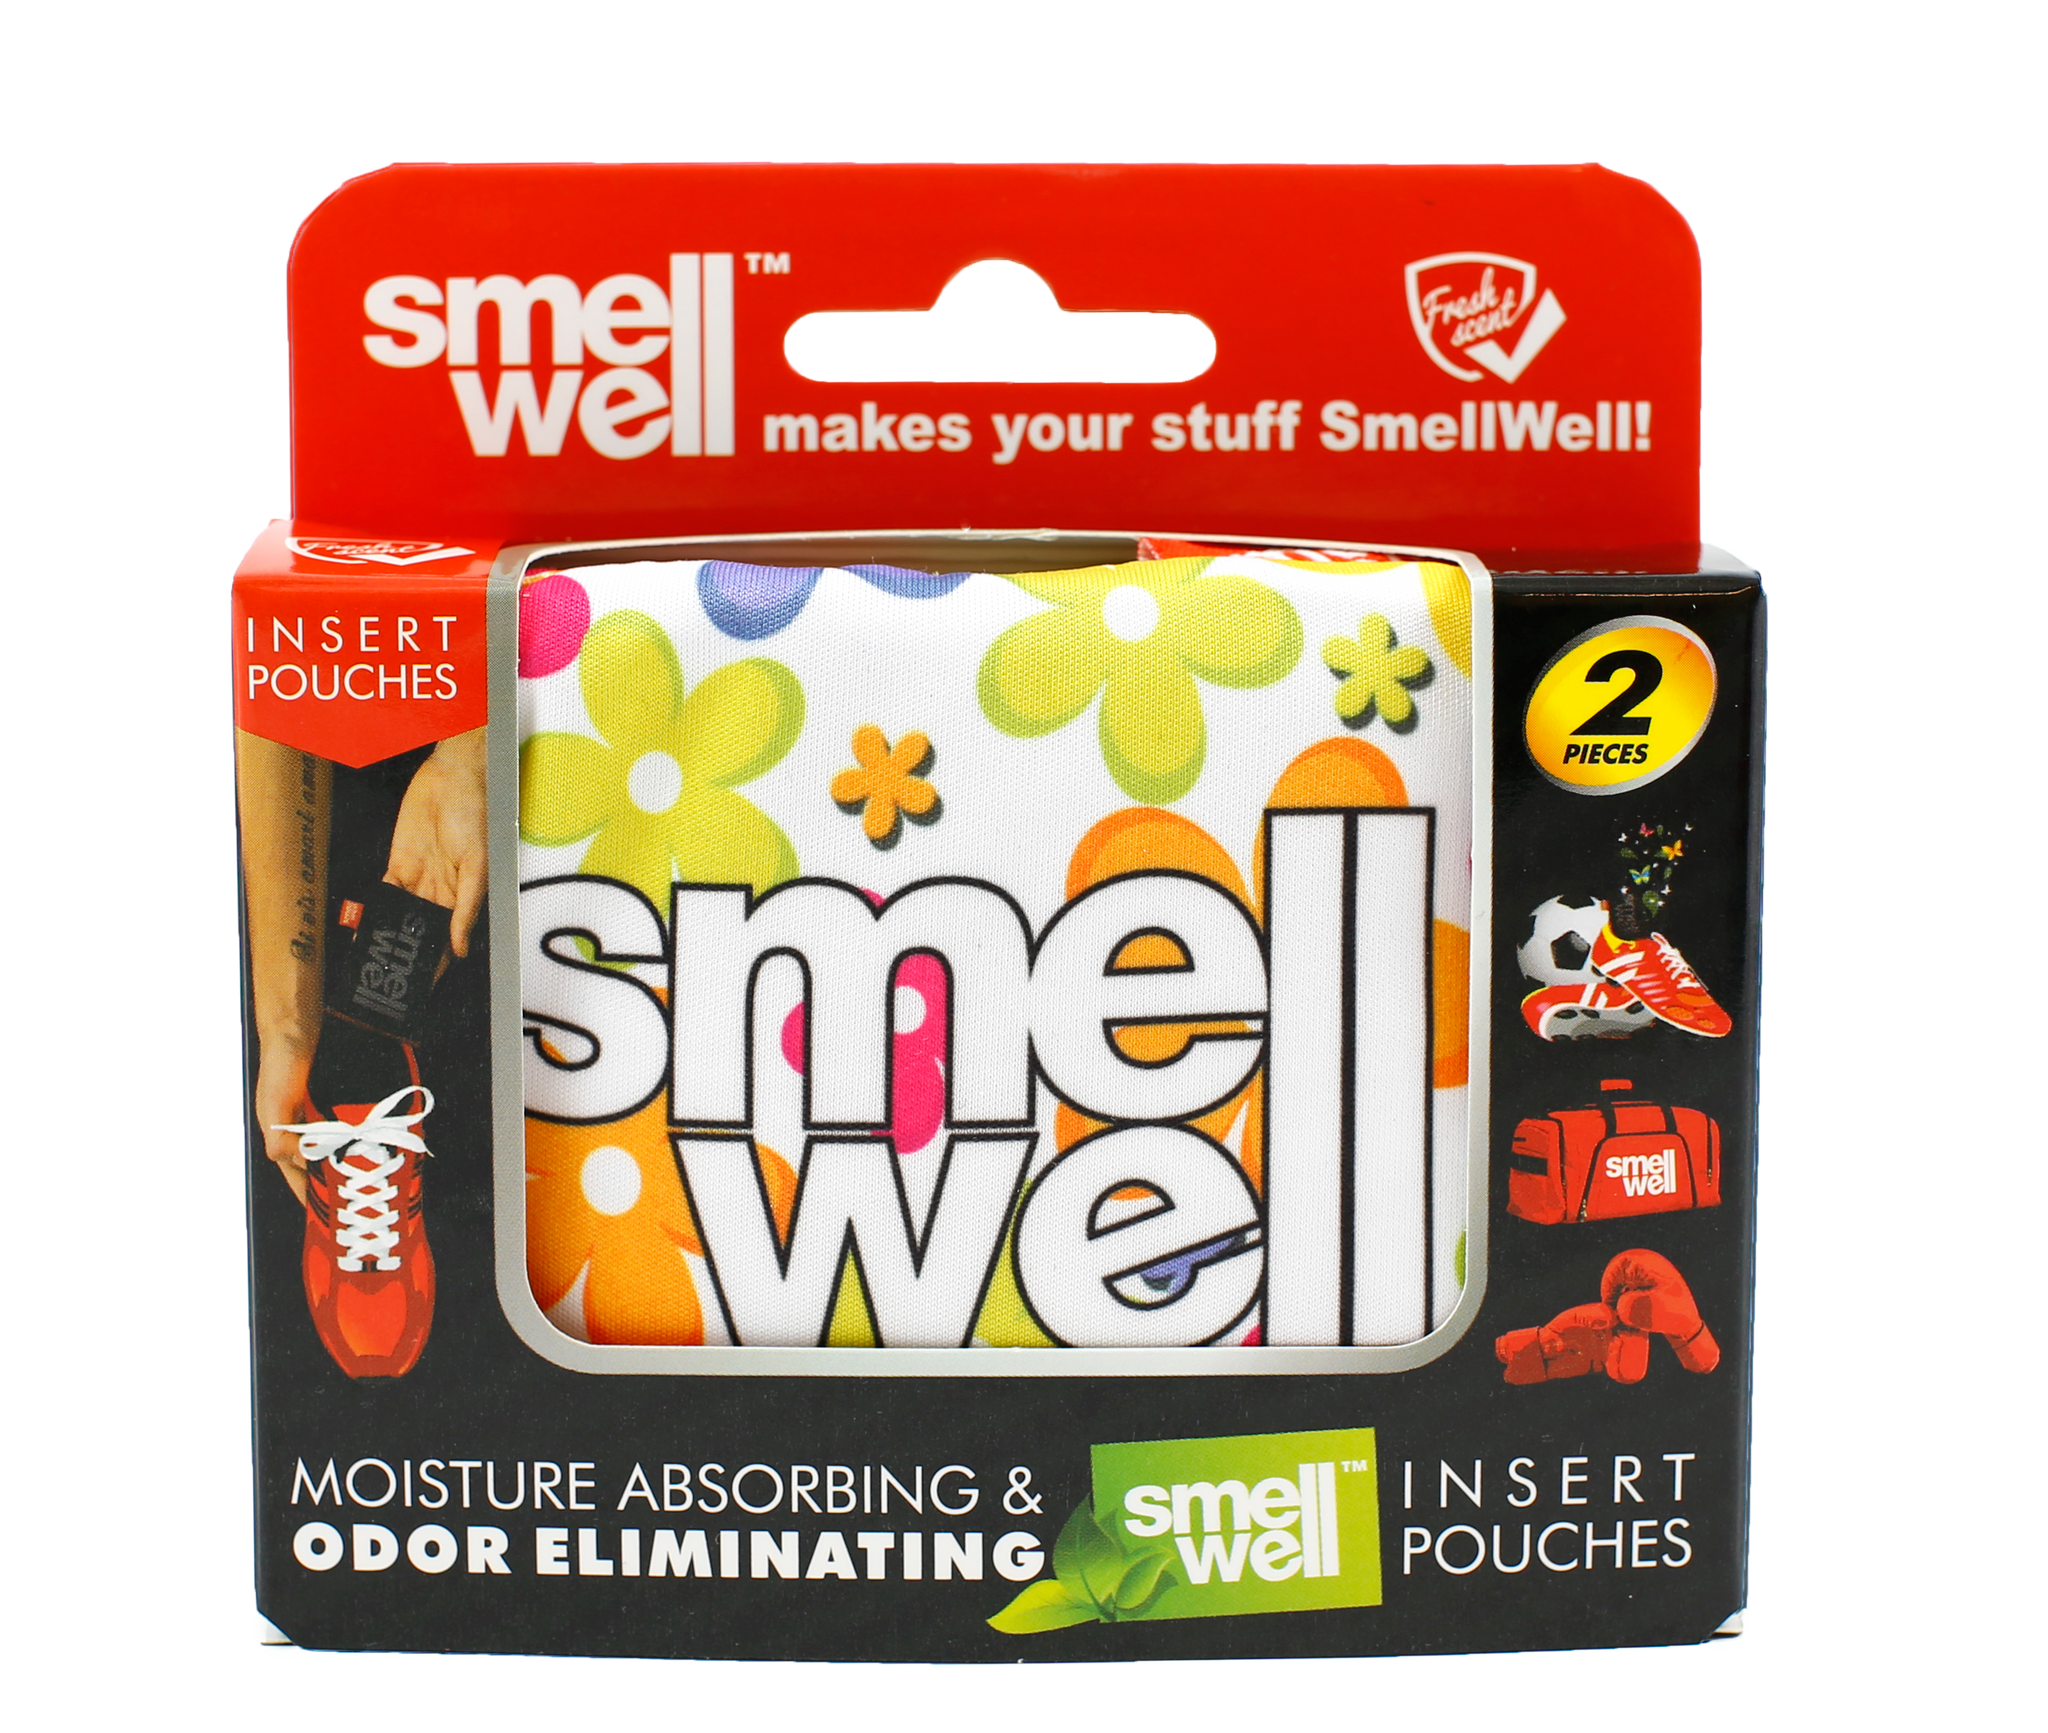 SmellWell - Floral-Wrightsock Australia